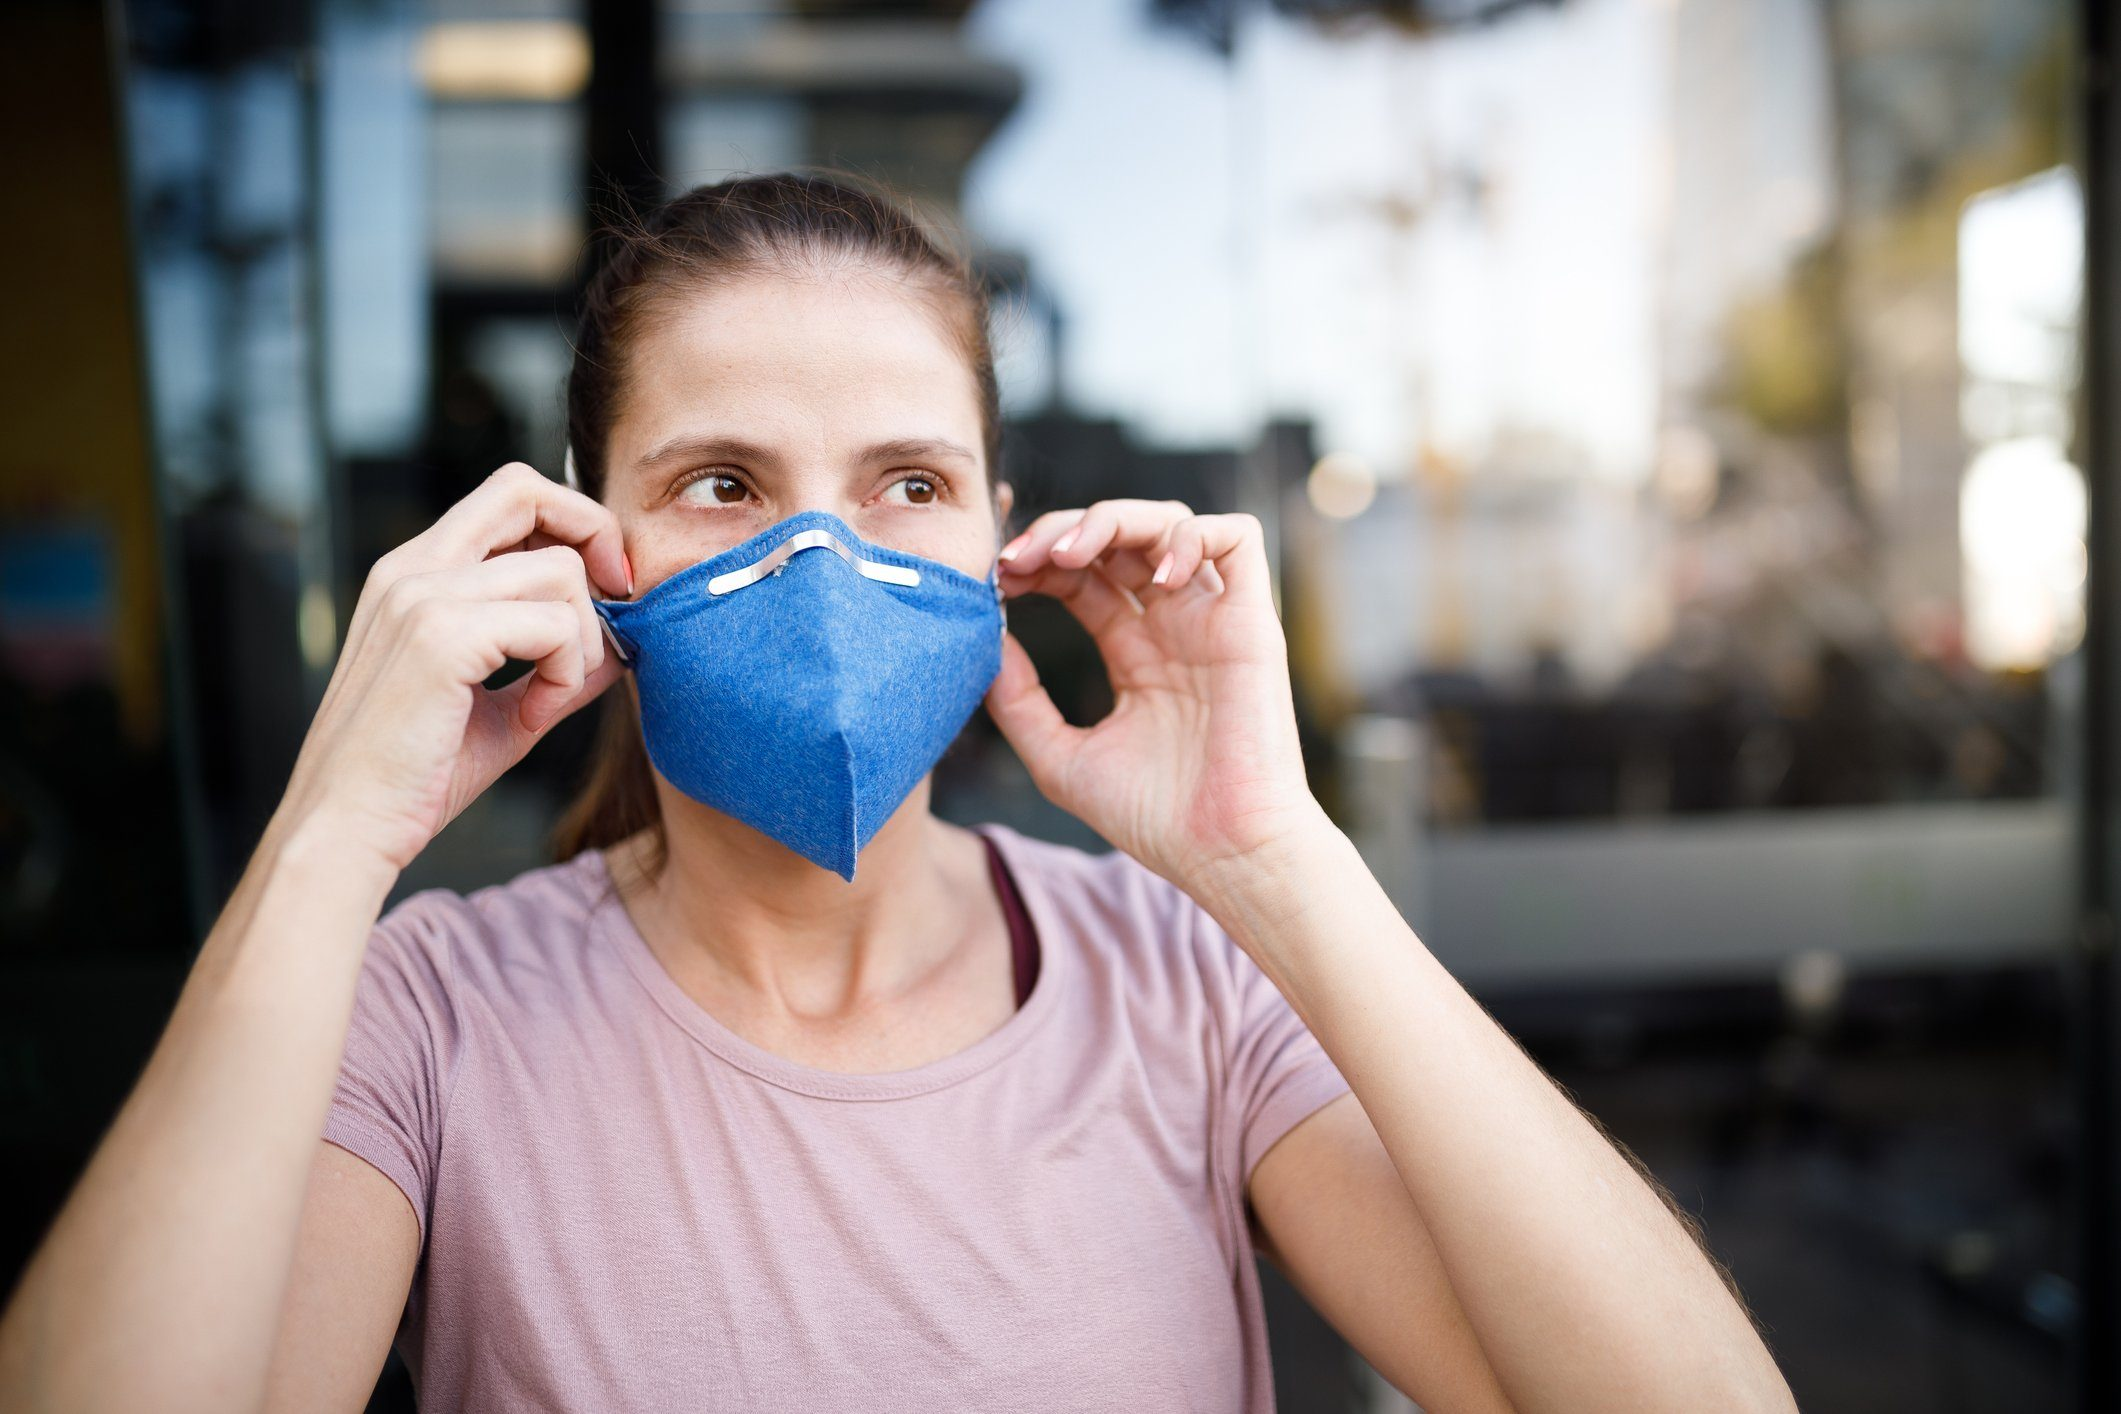 woman putting mask on face to protect from coronavirus